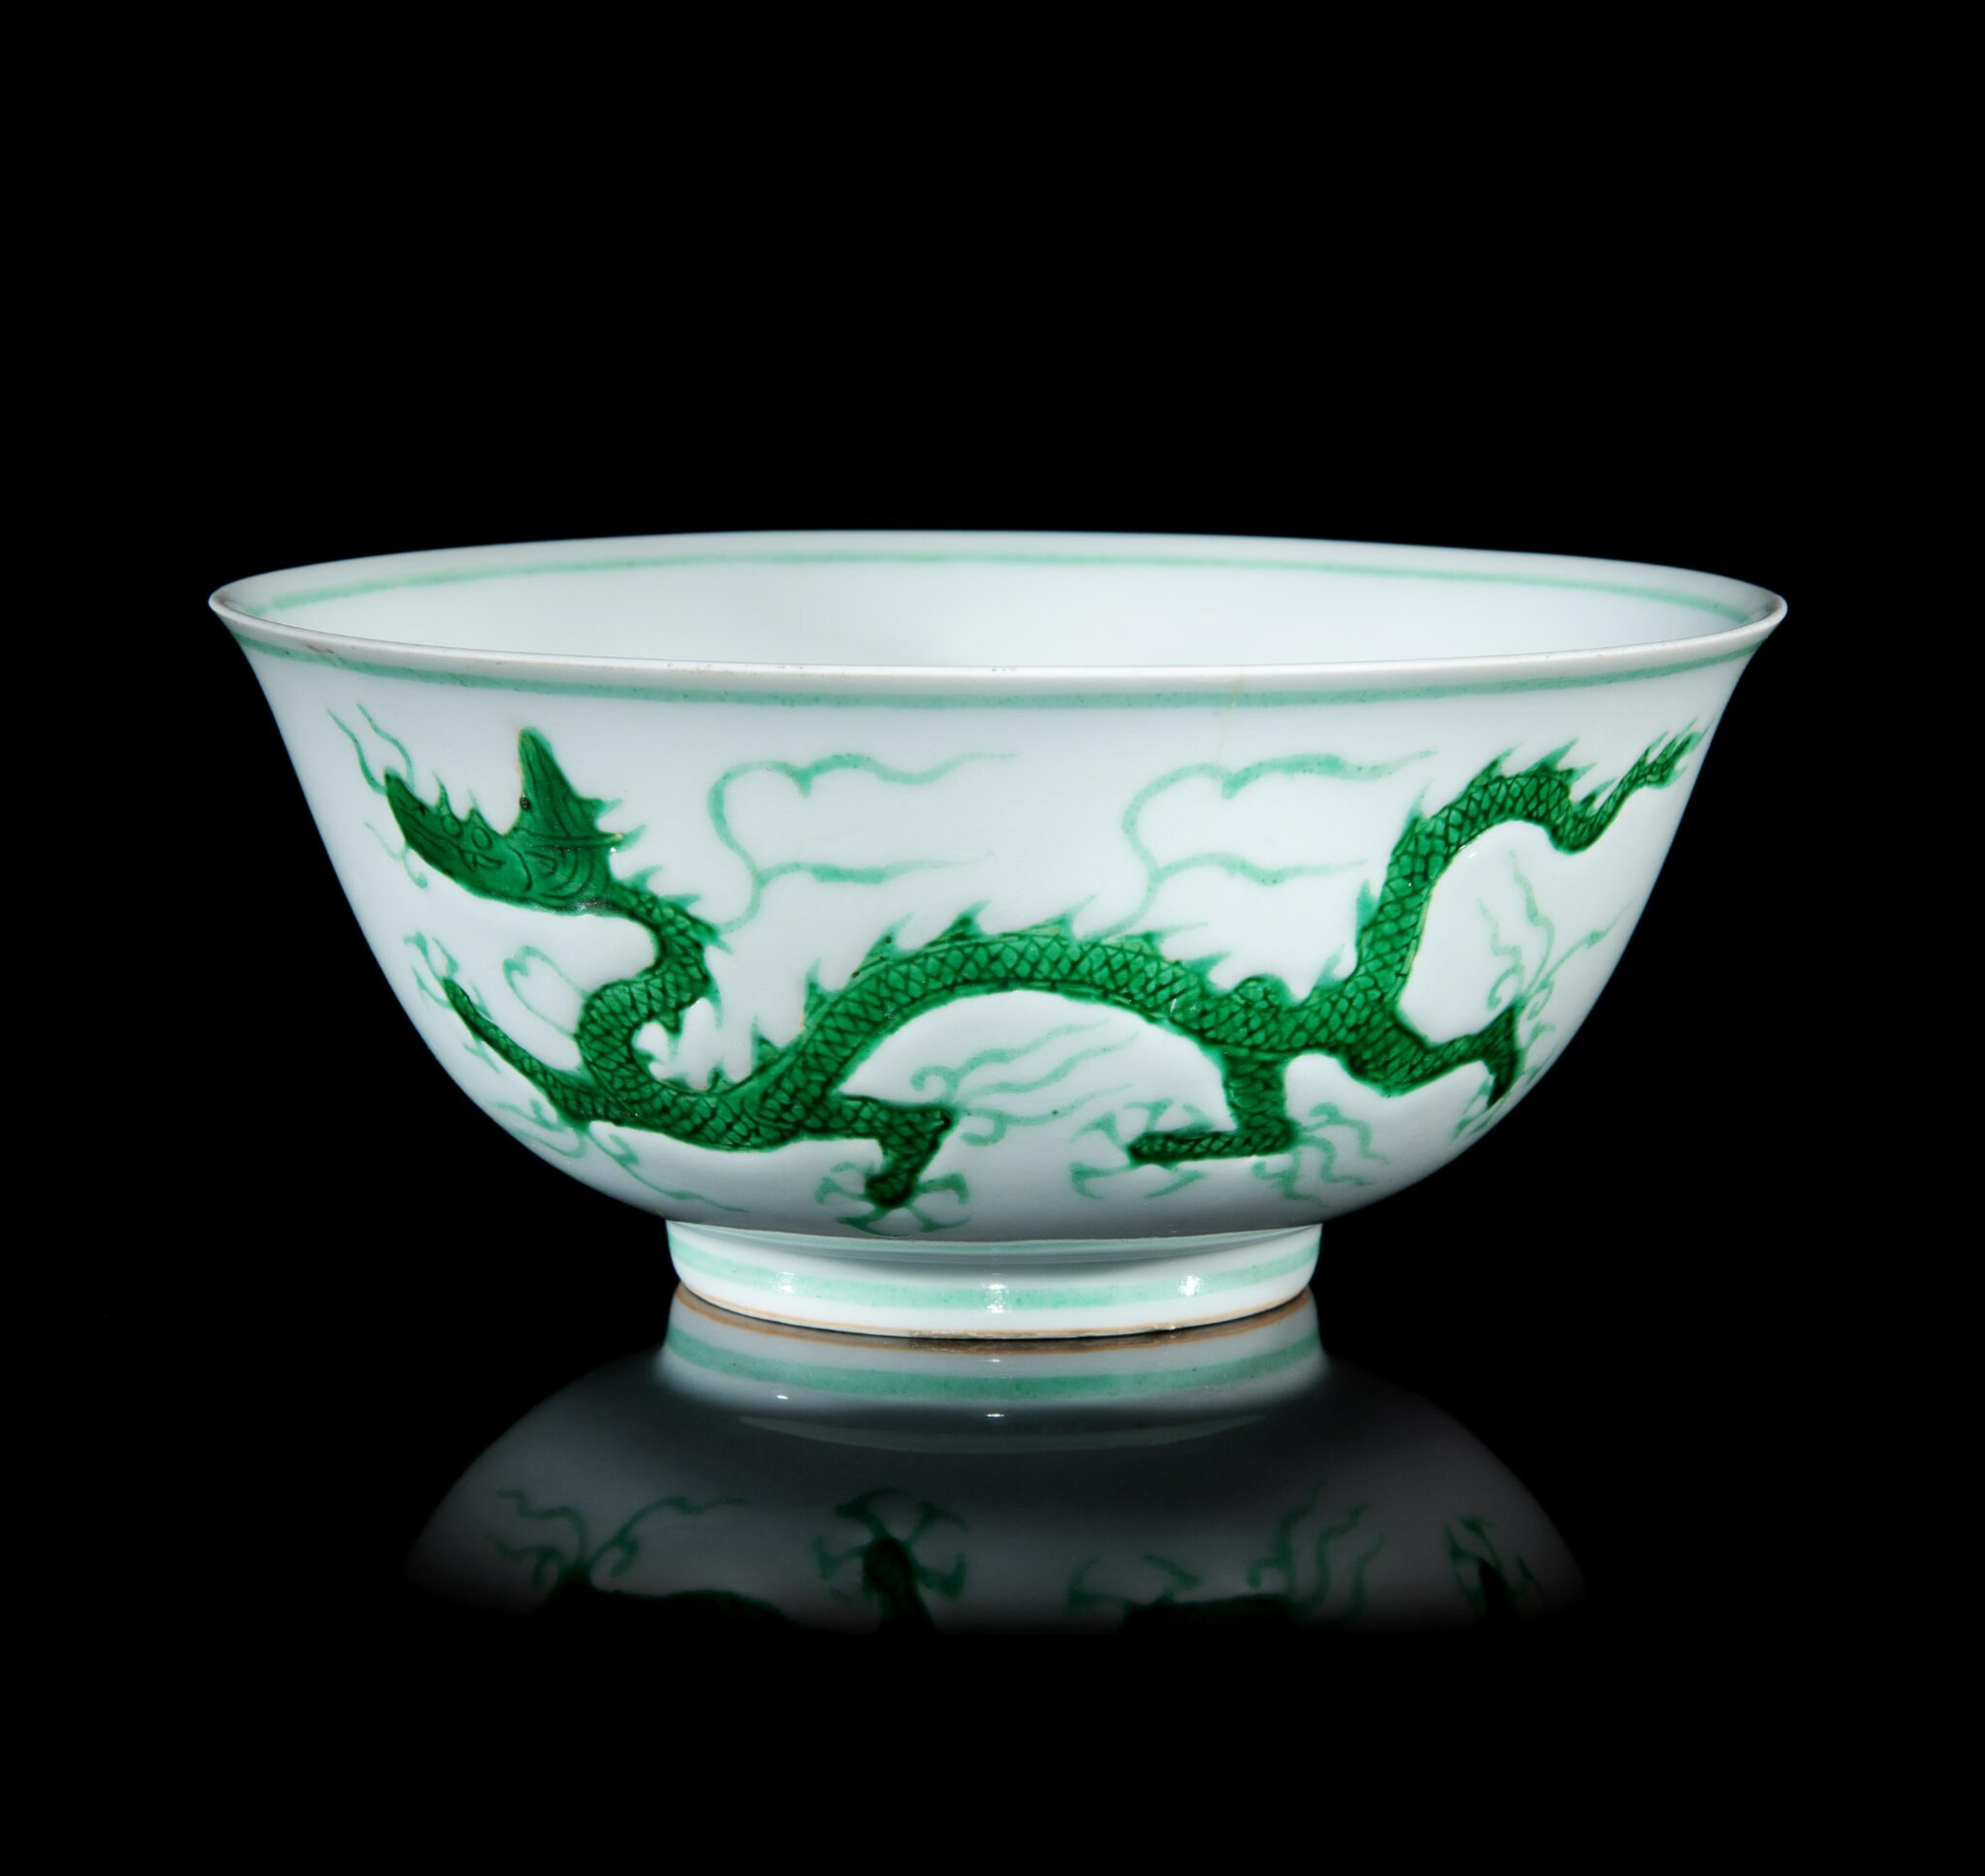 A Rare Incised and Green Enameled Porcelain 'Dragon' Bowl, Zhengde Period (1506-1521)